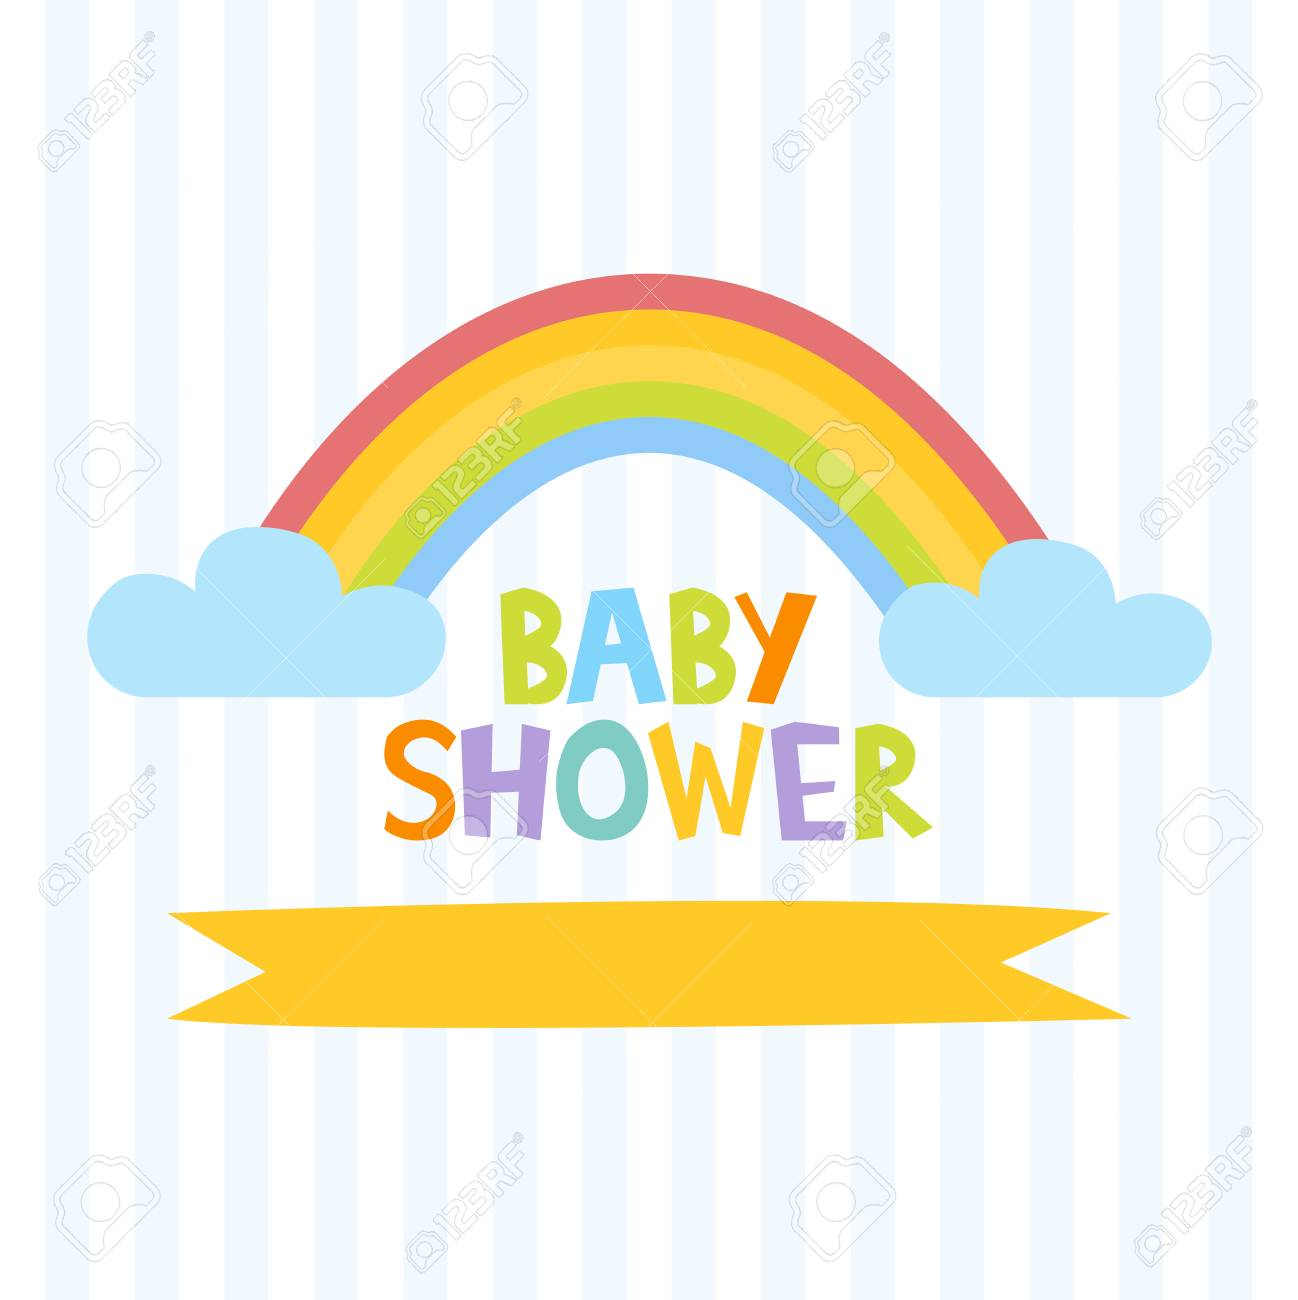 Cute Baby Shower Invitation Template With Letters And Rainbow